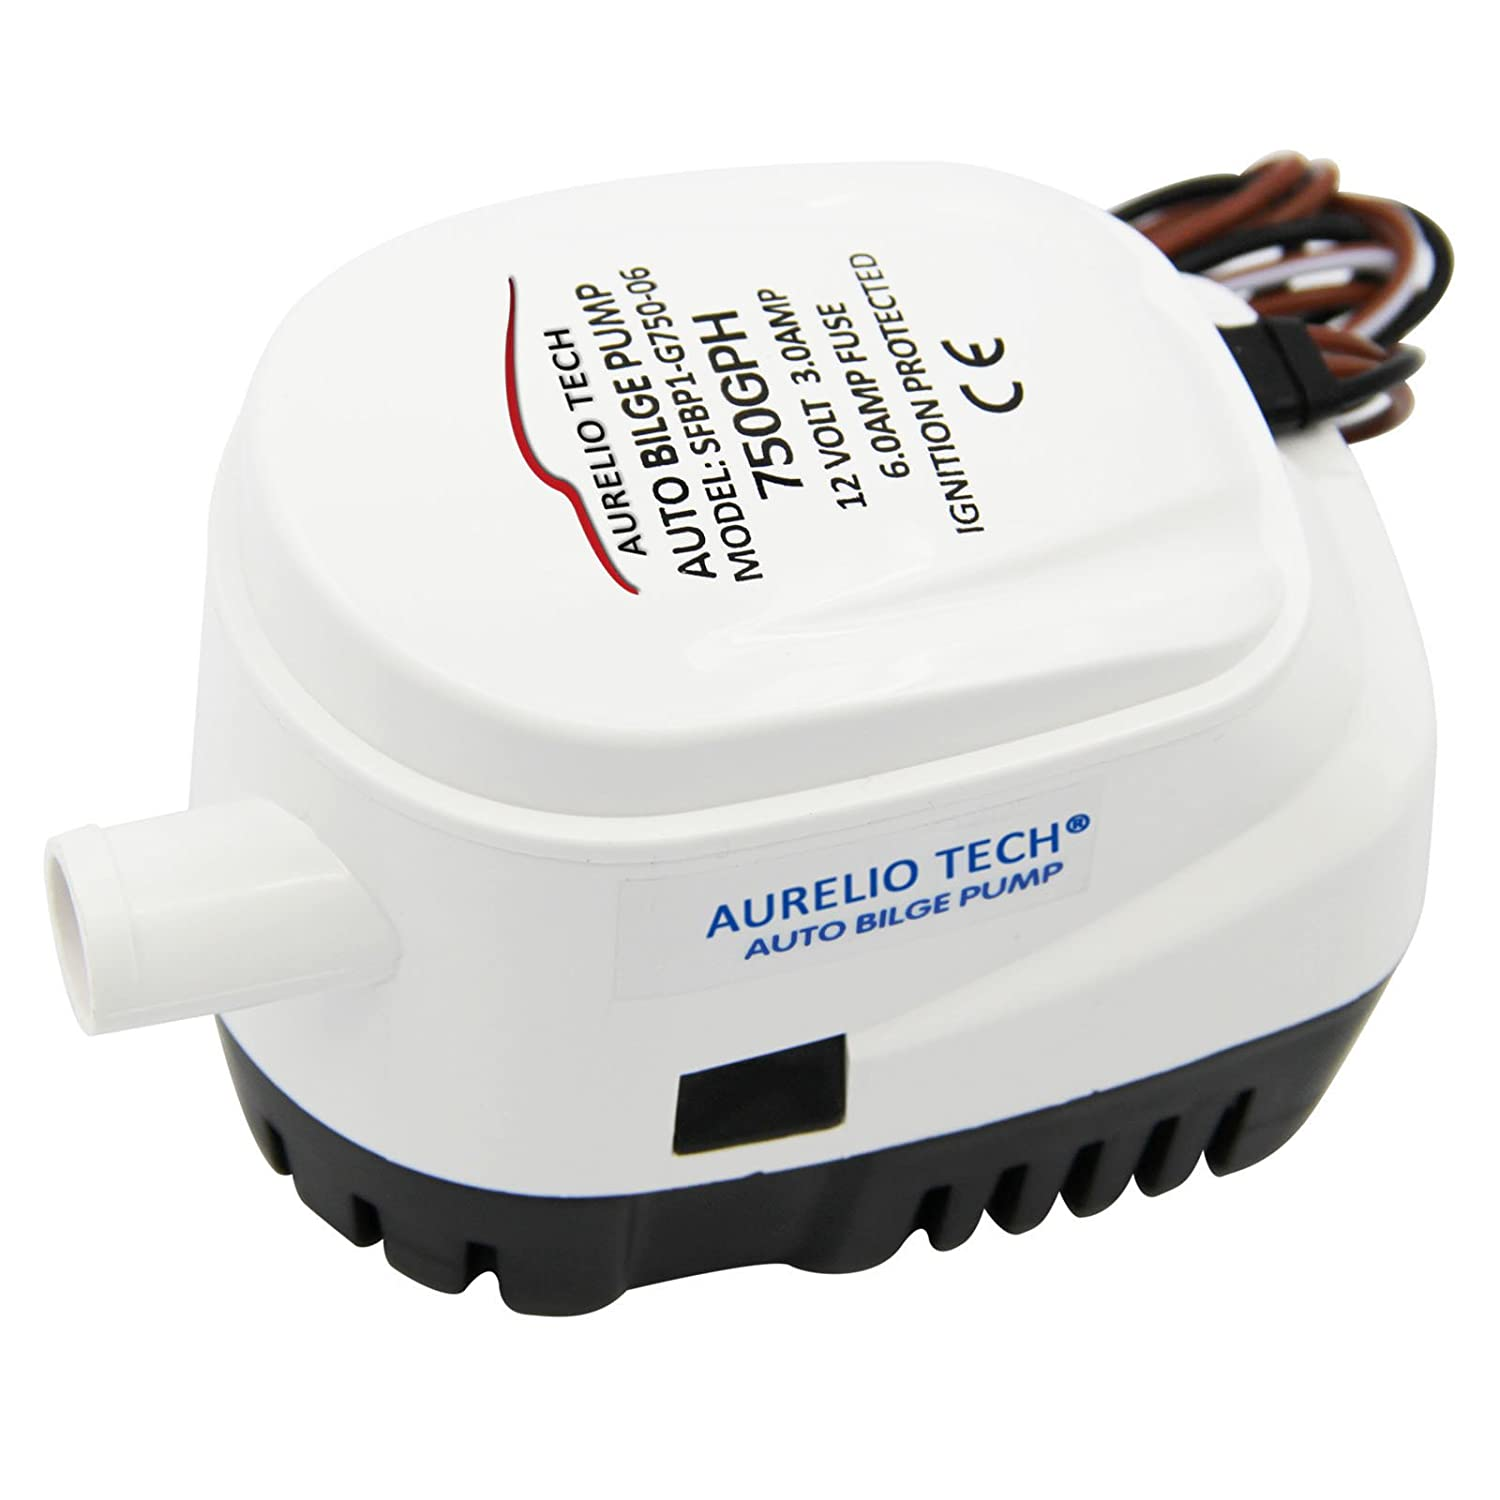 Amazon.com : AURELIO TECH 12V Automatic Submersible Boat Bilge ...